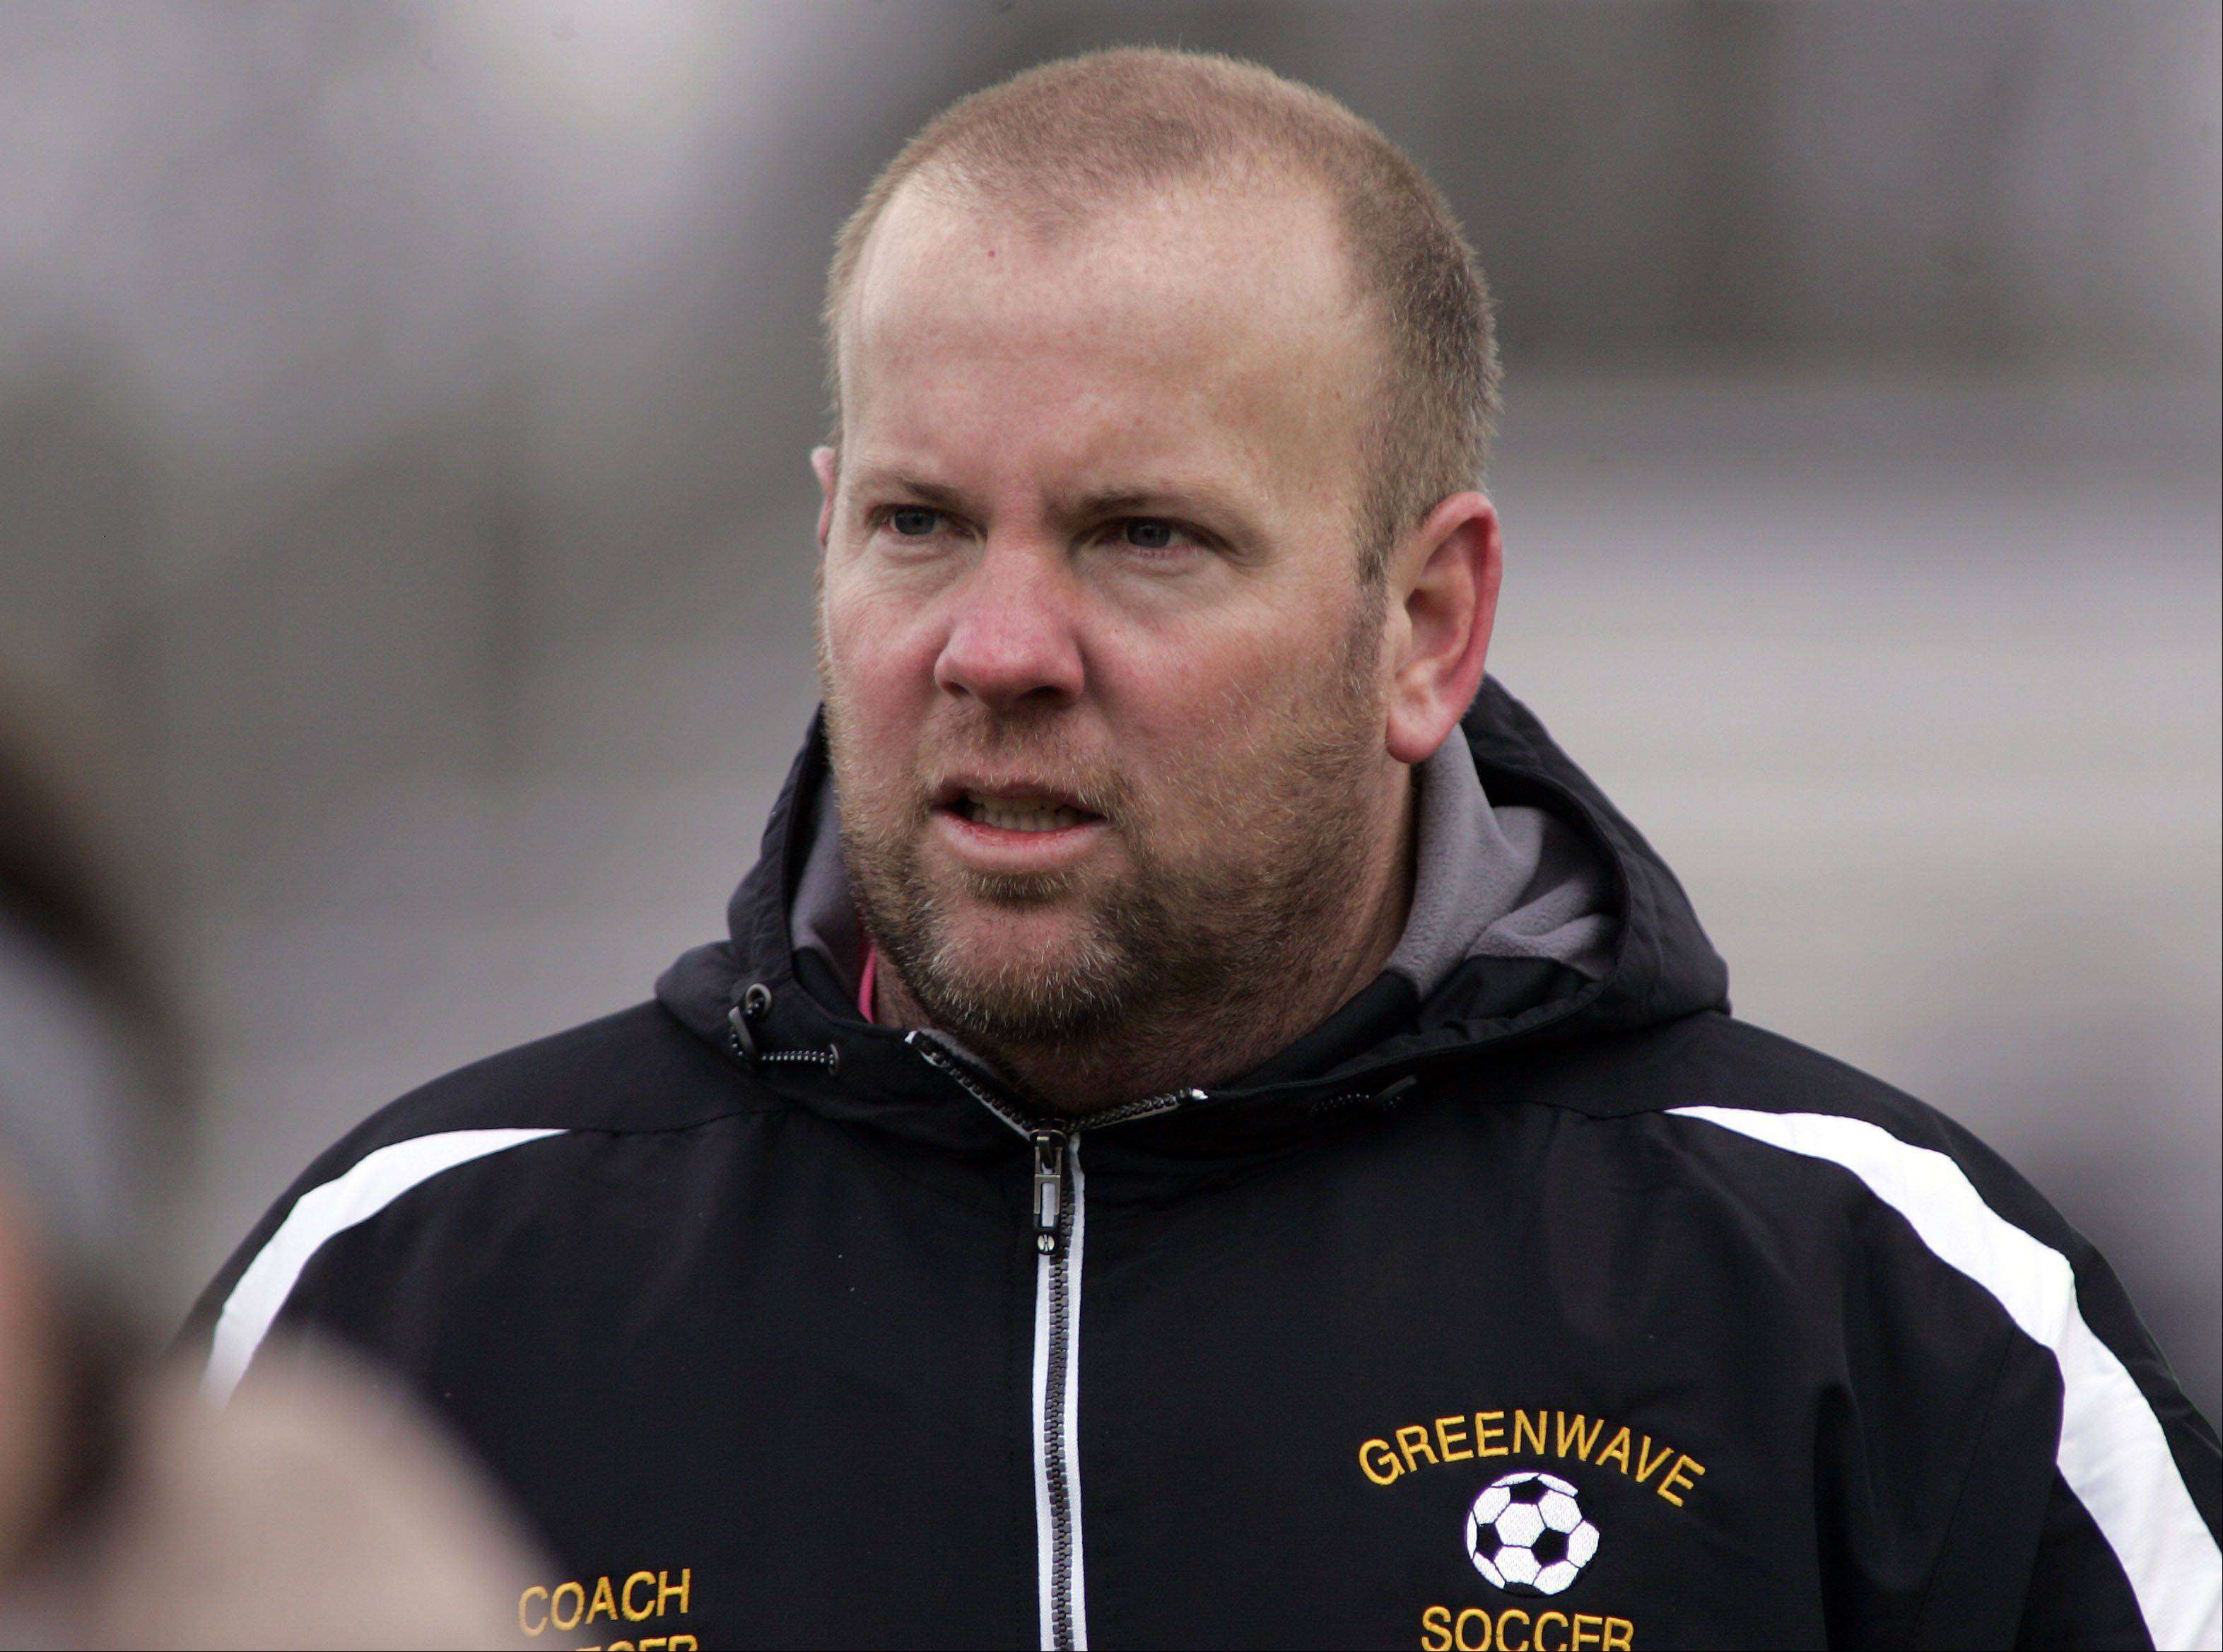 St. Edward soccer coach Tim Brieger won his 200th game with the girls program Saturday.